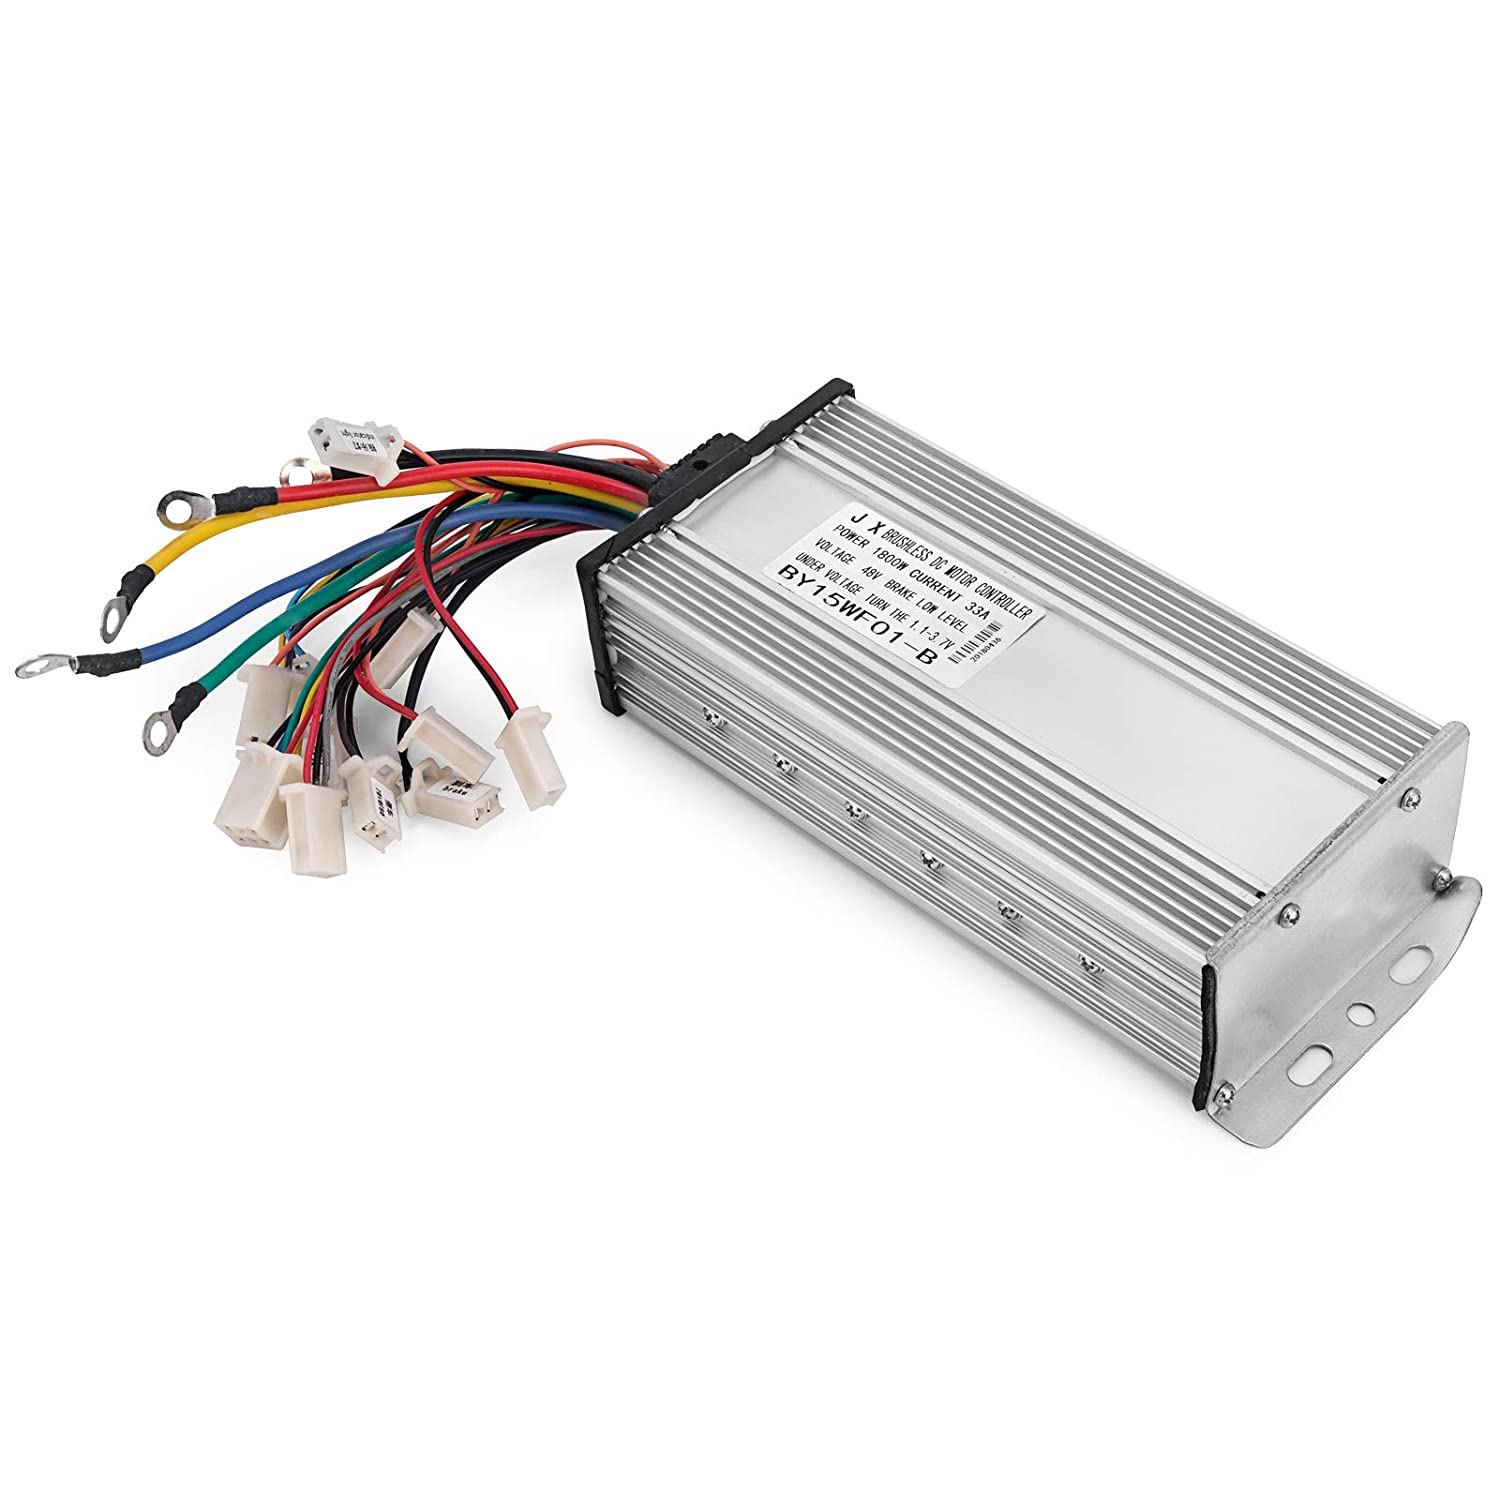 Mophorn 1800w Electric Brushless Dc Motor Kit 48v High Electrical Control Wiring Speed With 32a Controller And Throttle Grip For Go Karts E Bike